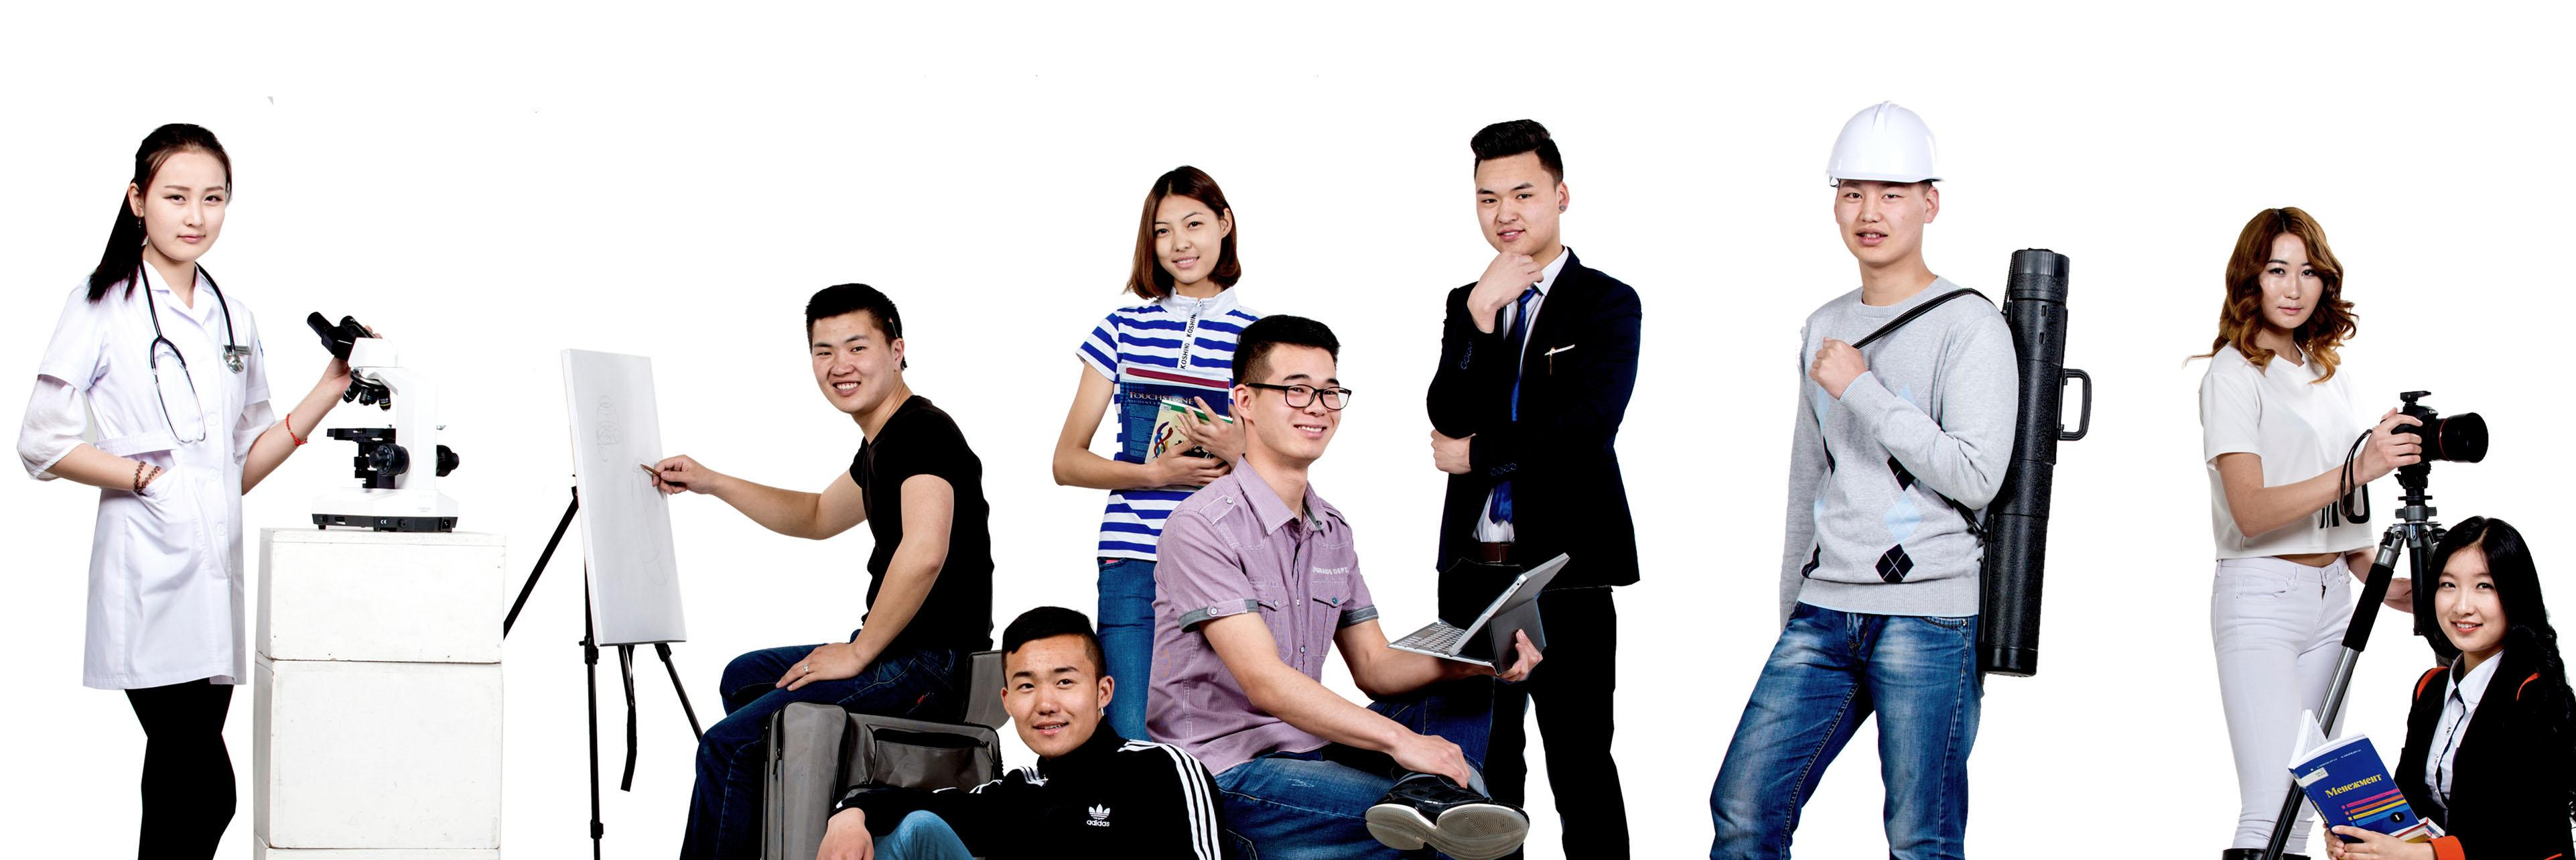 Mongolian National University's official Twitter account